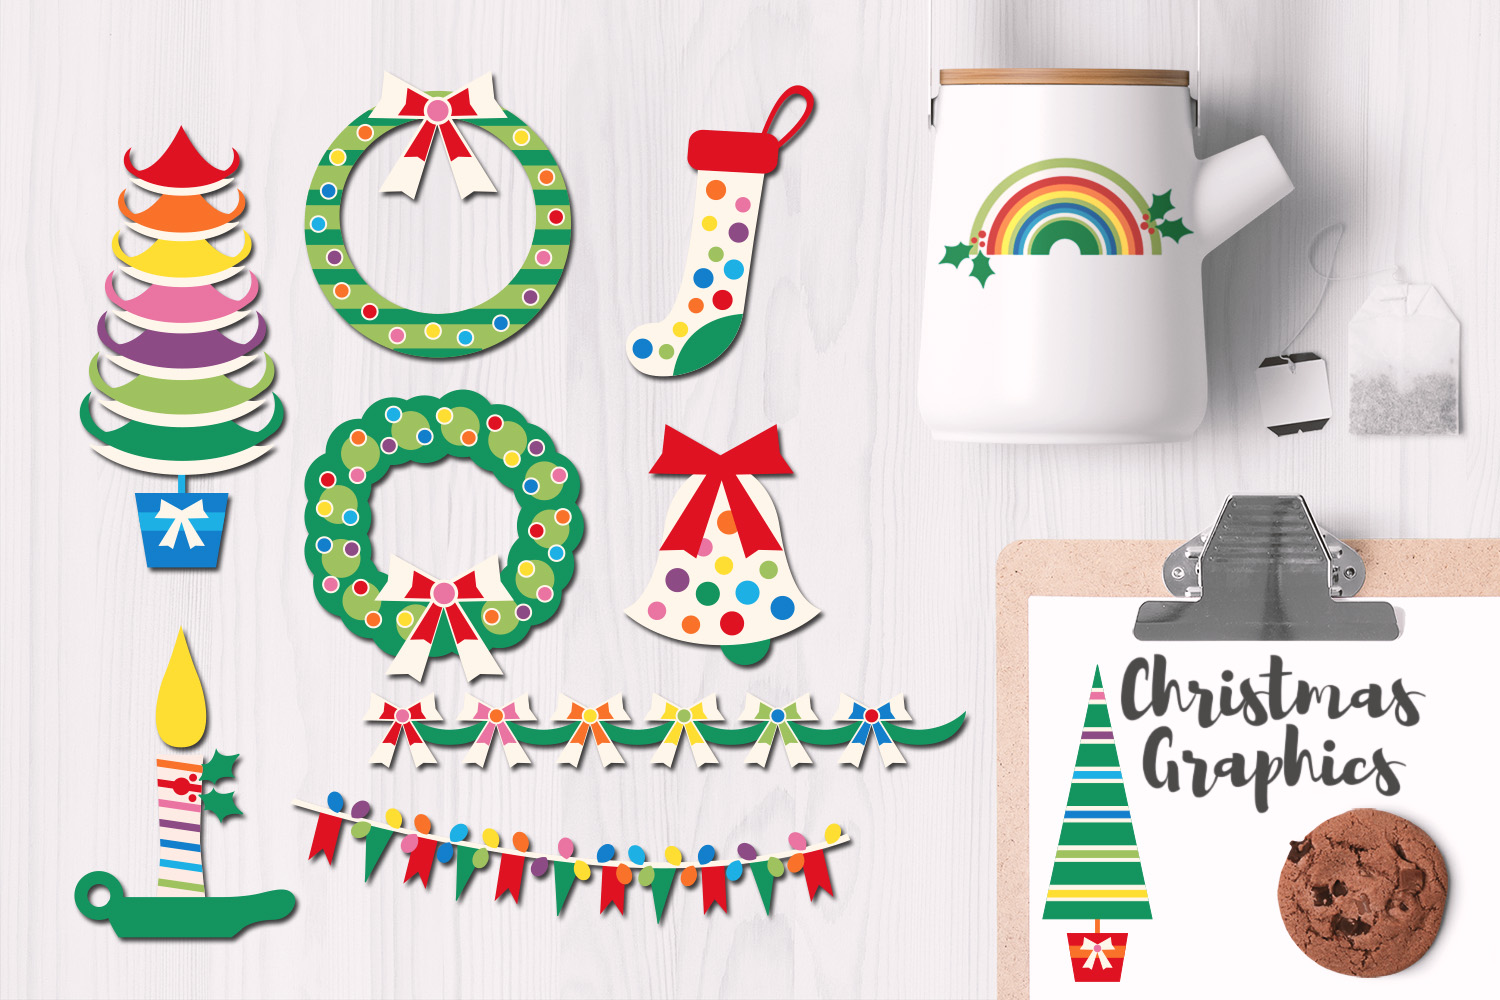 Christmas Rainbow Colors Illustrations example image 1